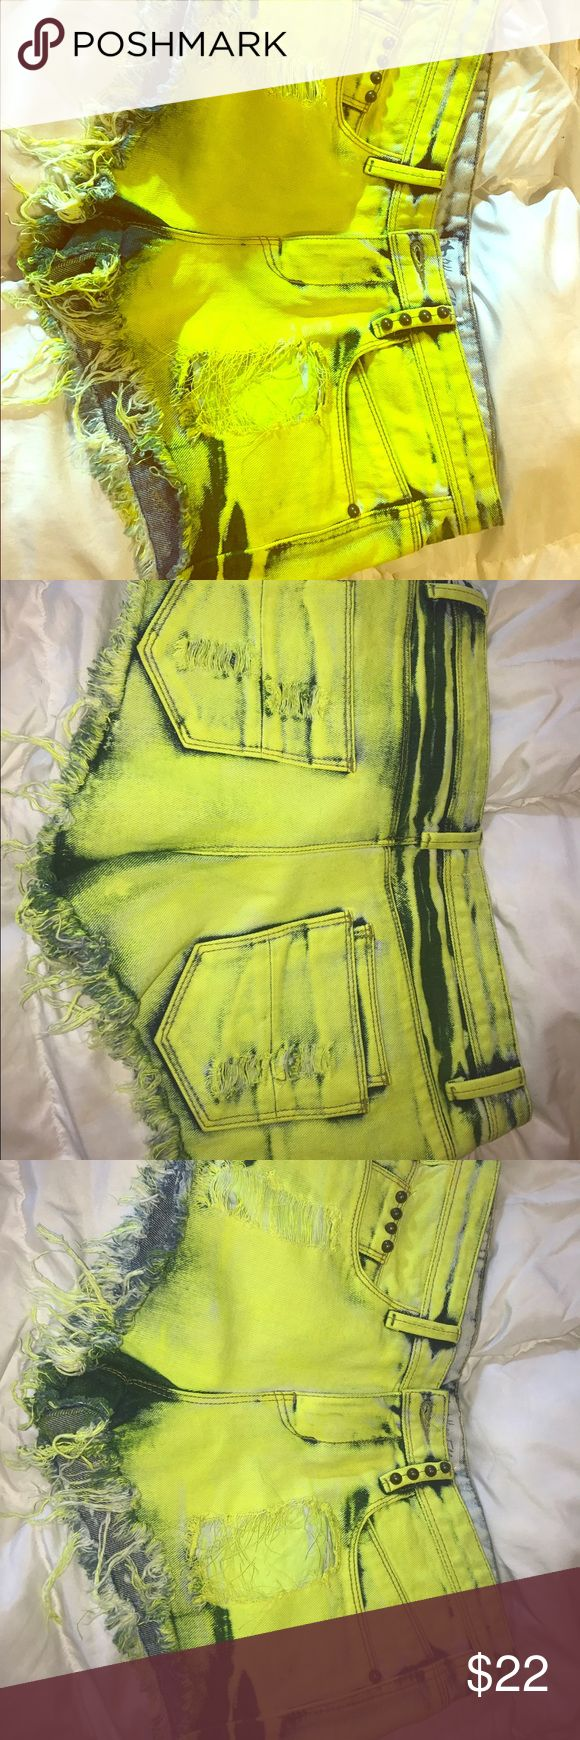 NWT Affliction style neon yellow shorts 27 New.. high waisted.. neon yellow frayed shorts Affliction Shorts Jean Shorts